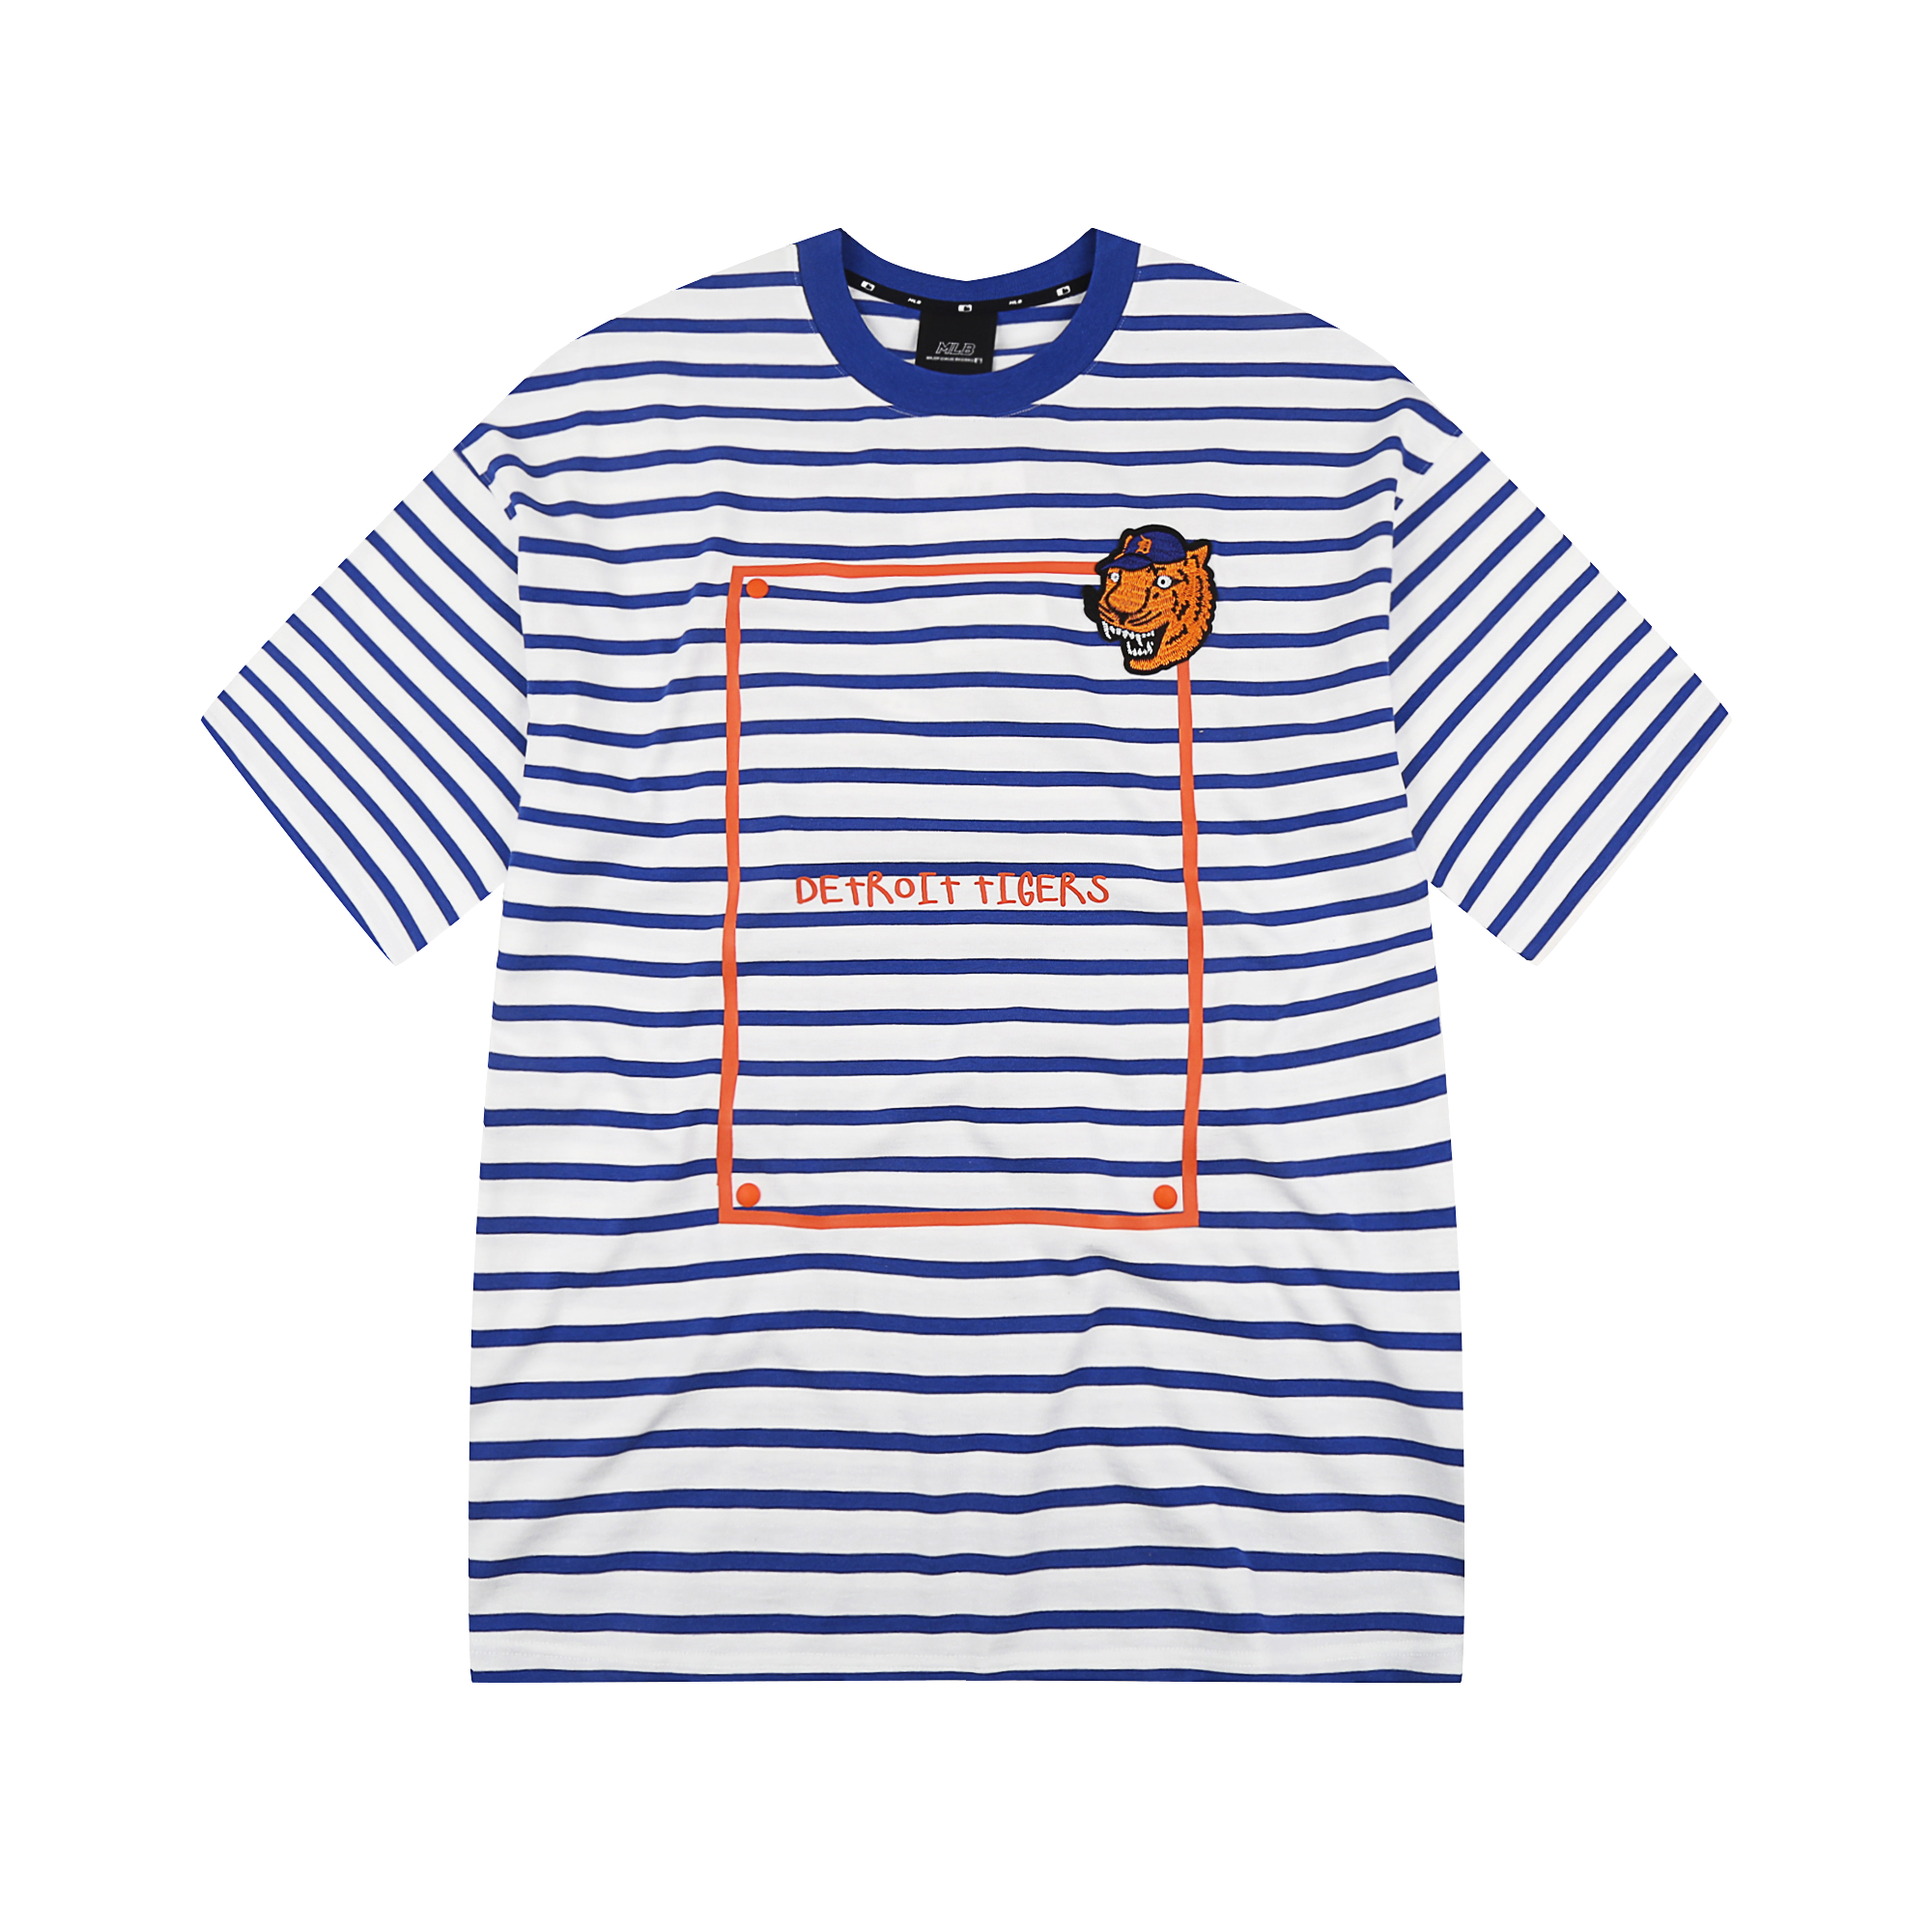 DETROIT TIGERS WHAT STRIPE SHORT SLEEVE T-SHIRT